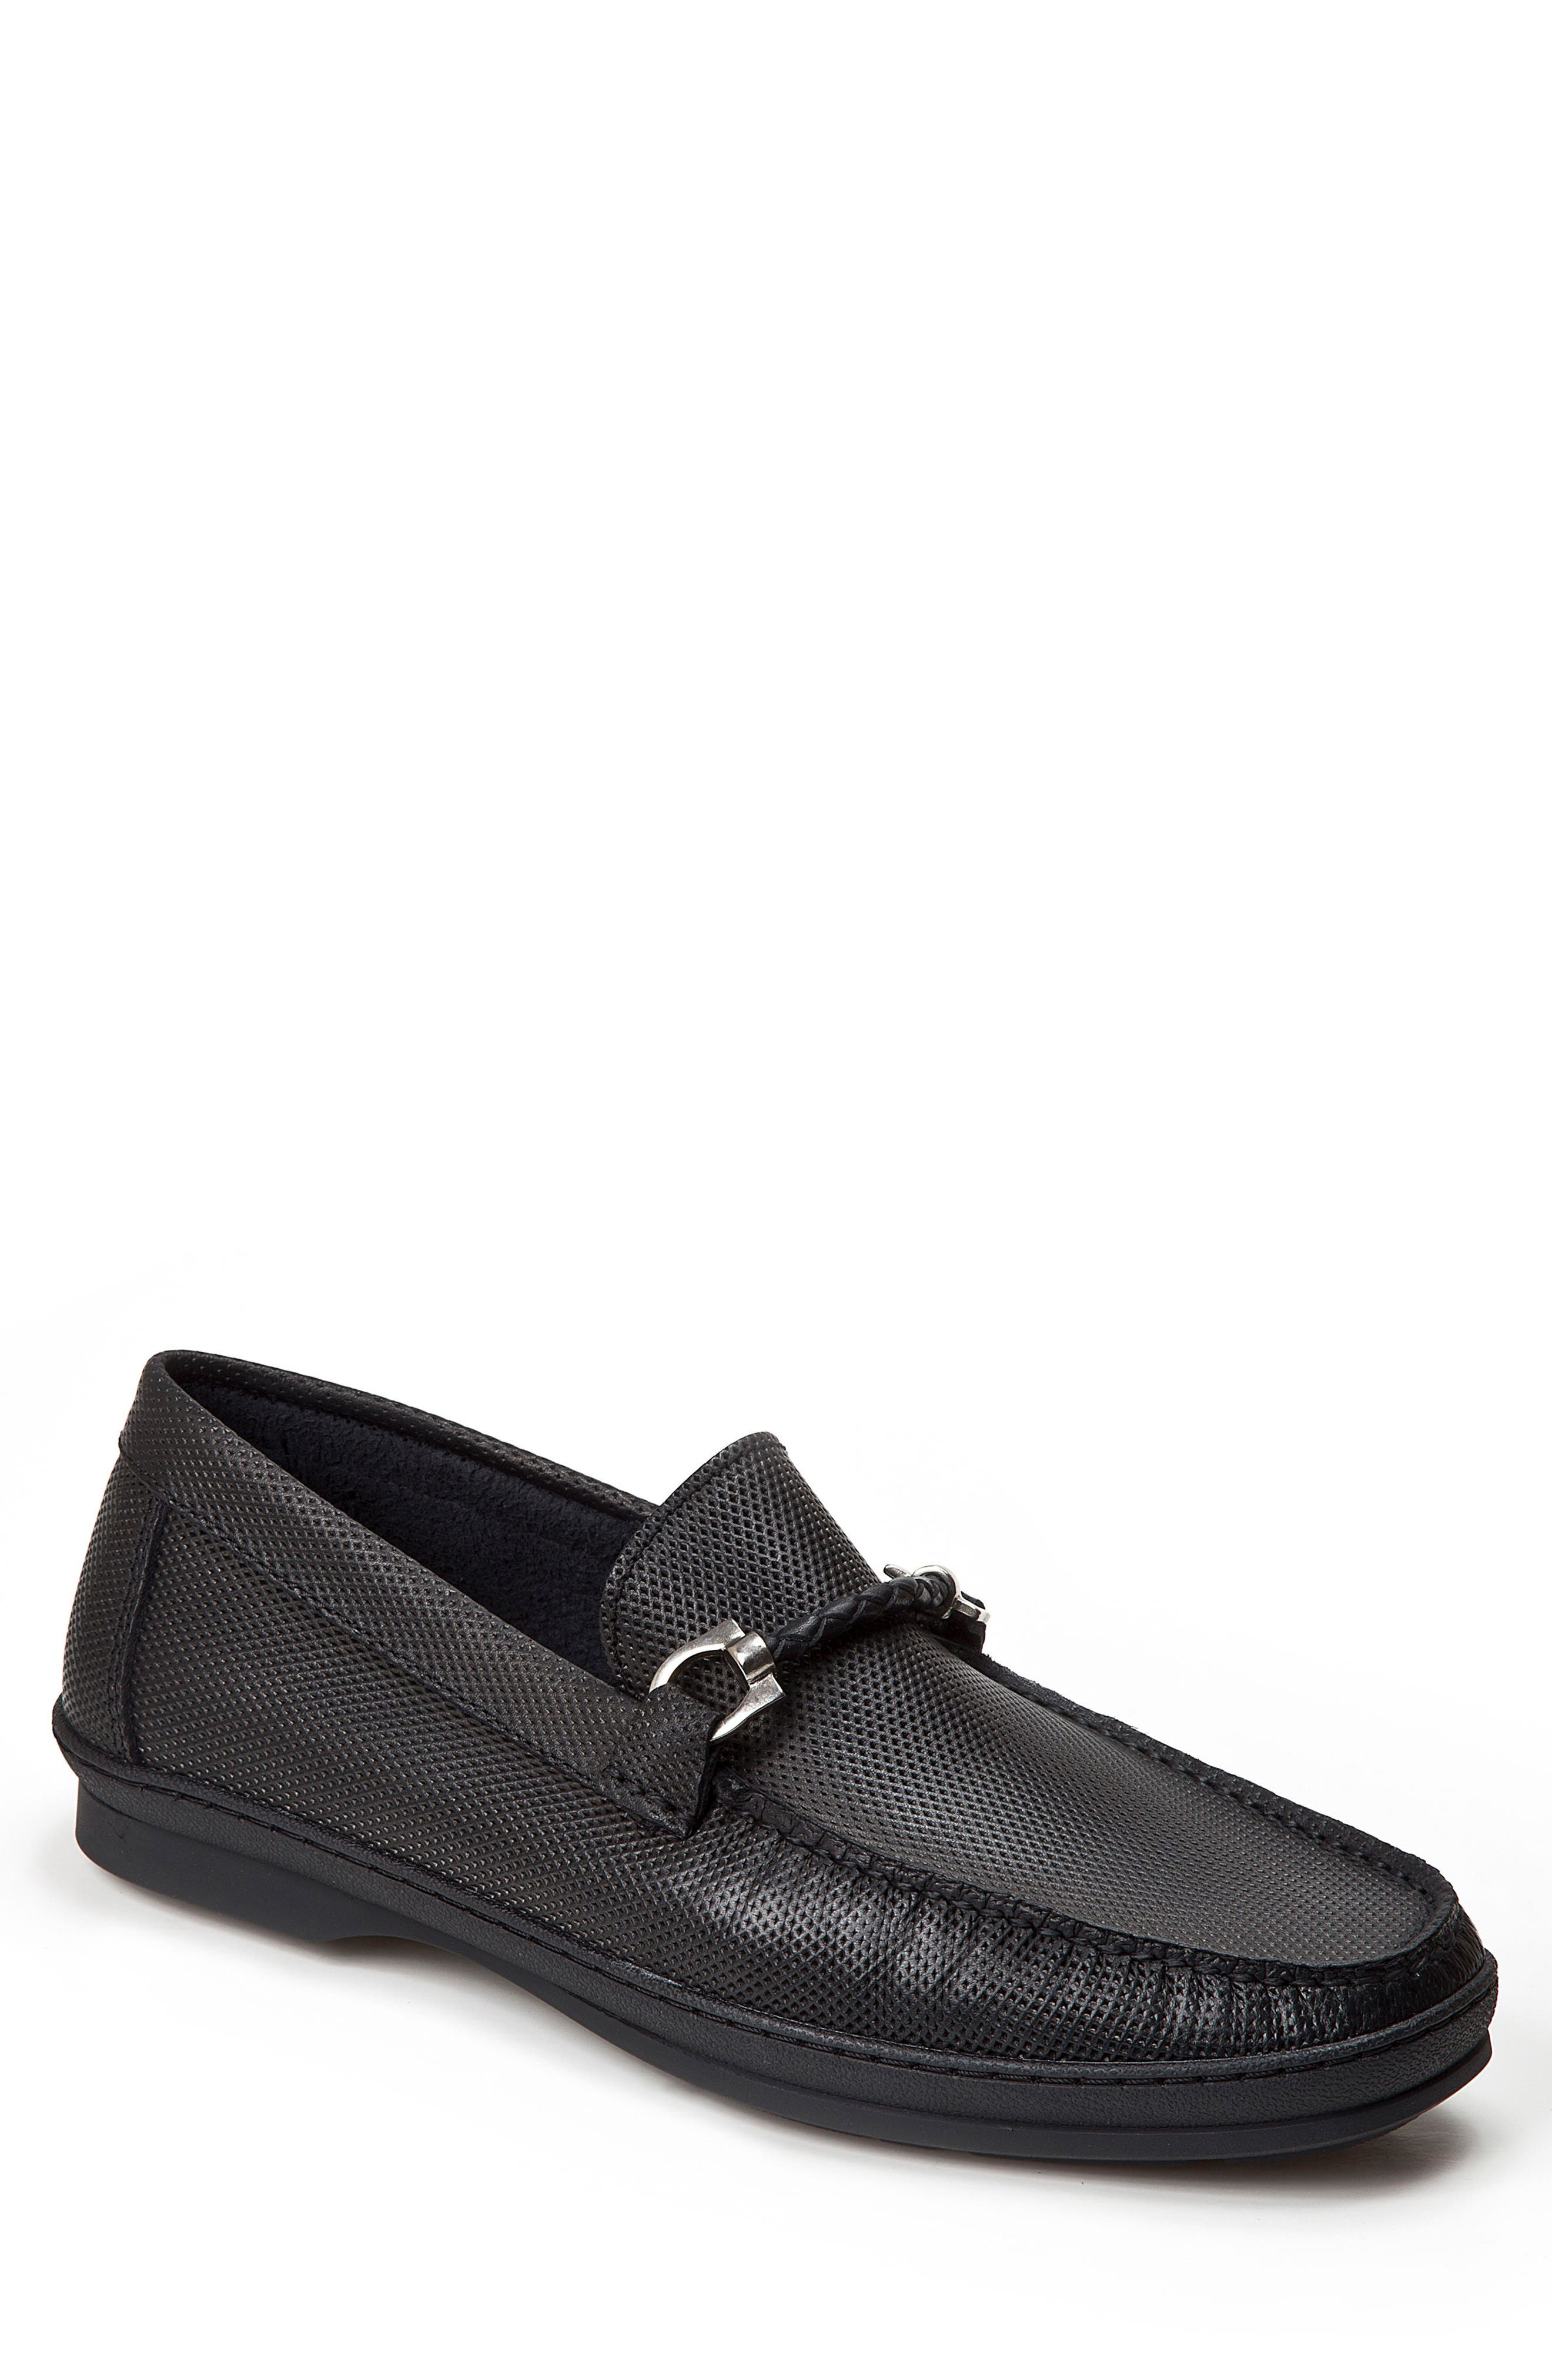 SANDRO MOSCOLONI Benito Perforated Moc Toe Loafer, Main, color, 001